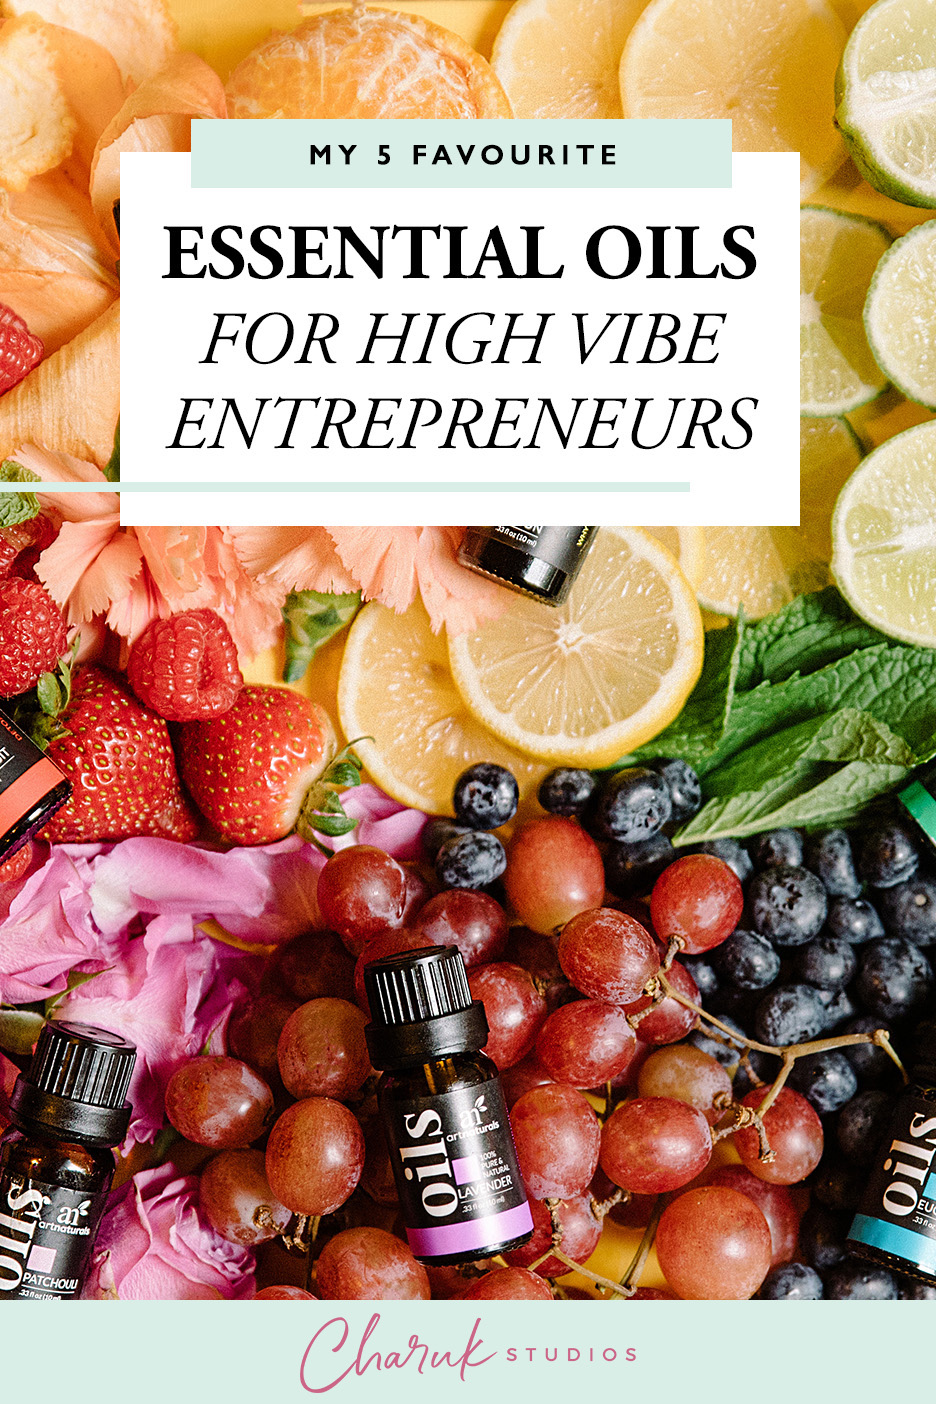 My 5 Favourite Essential Oil Blends for High Vibe